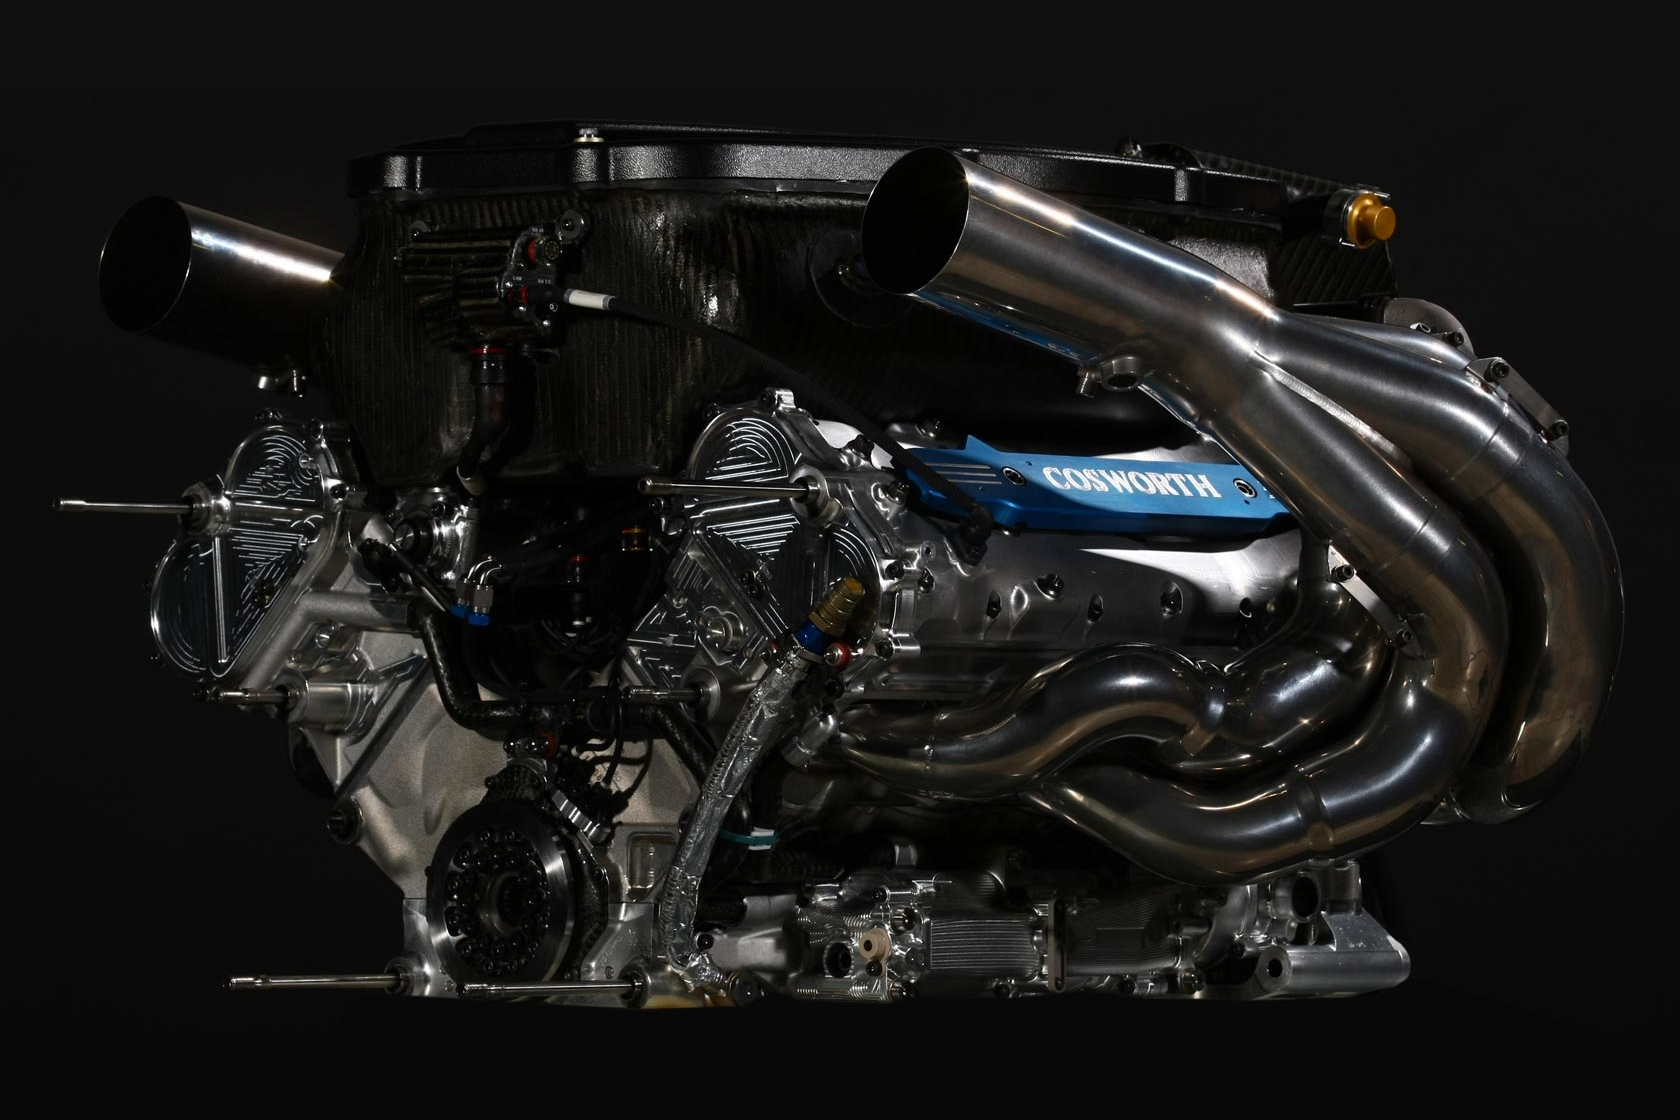 cosworth ca2010 engine f1